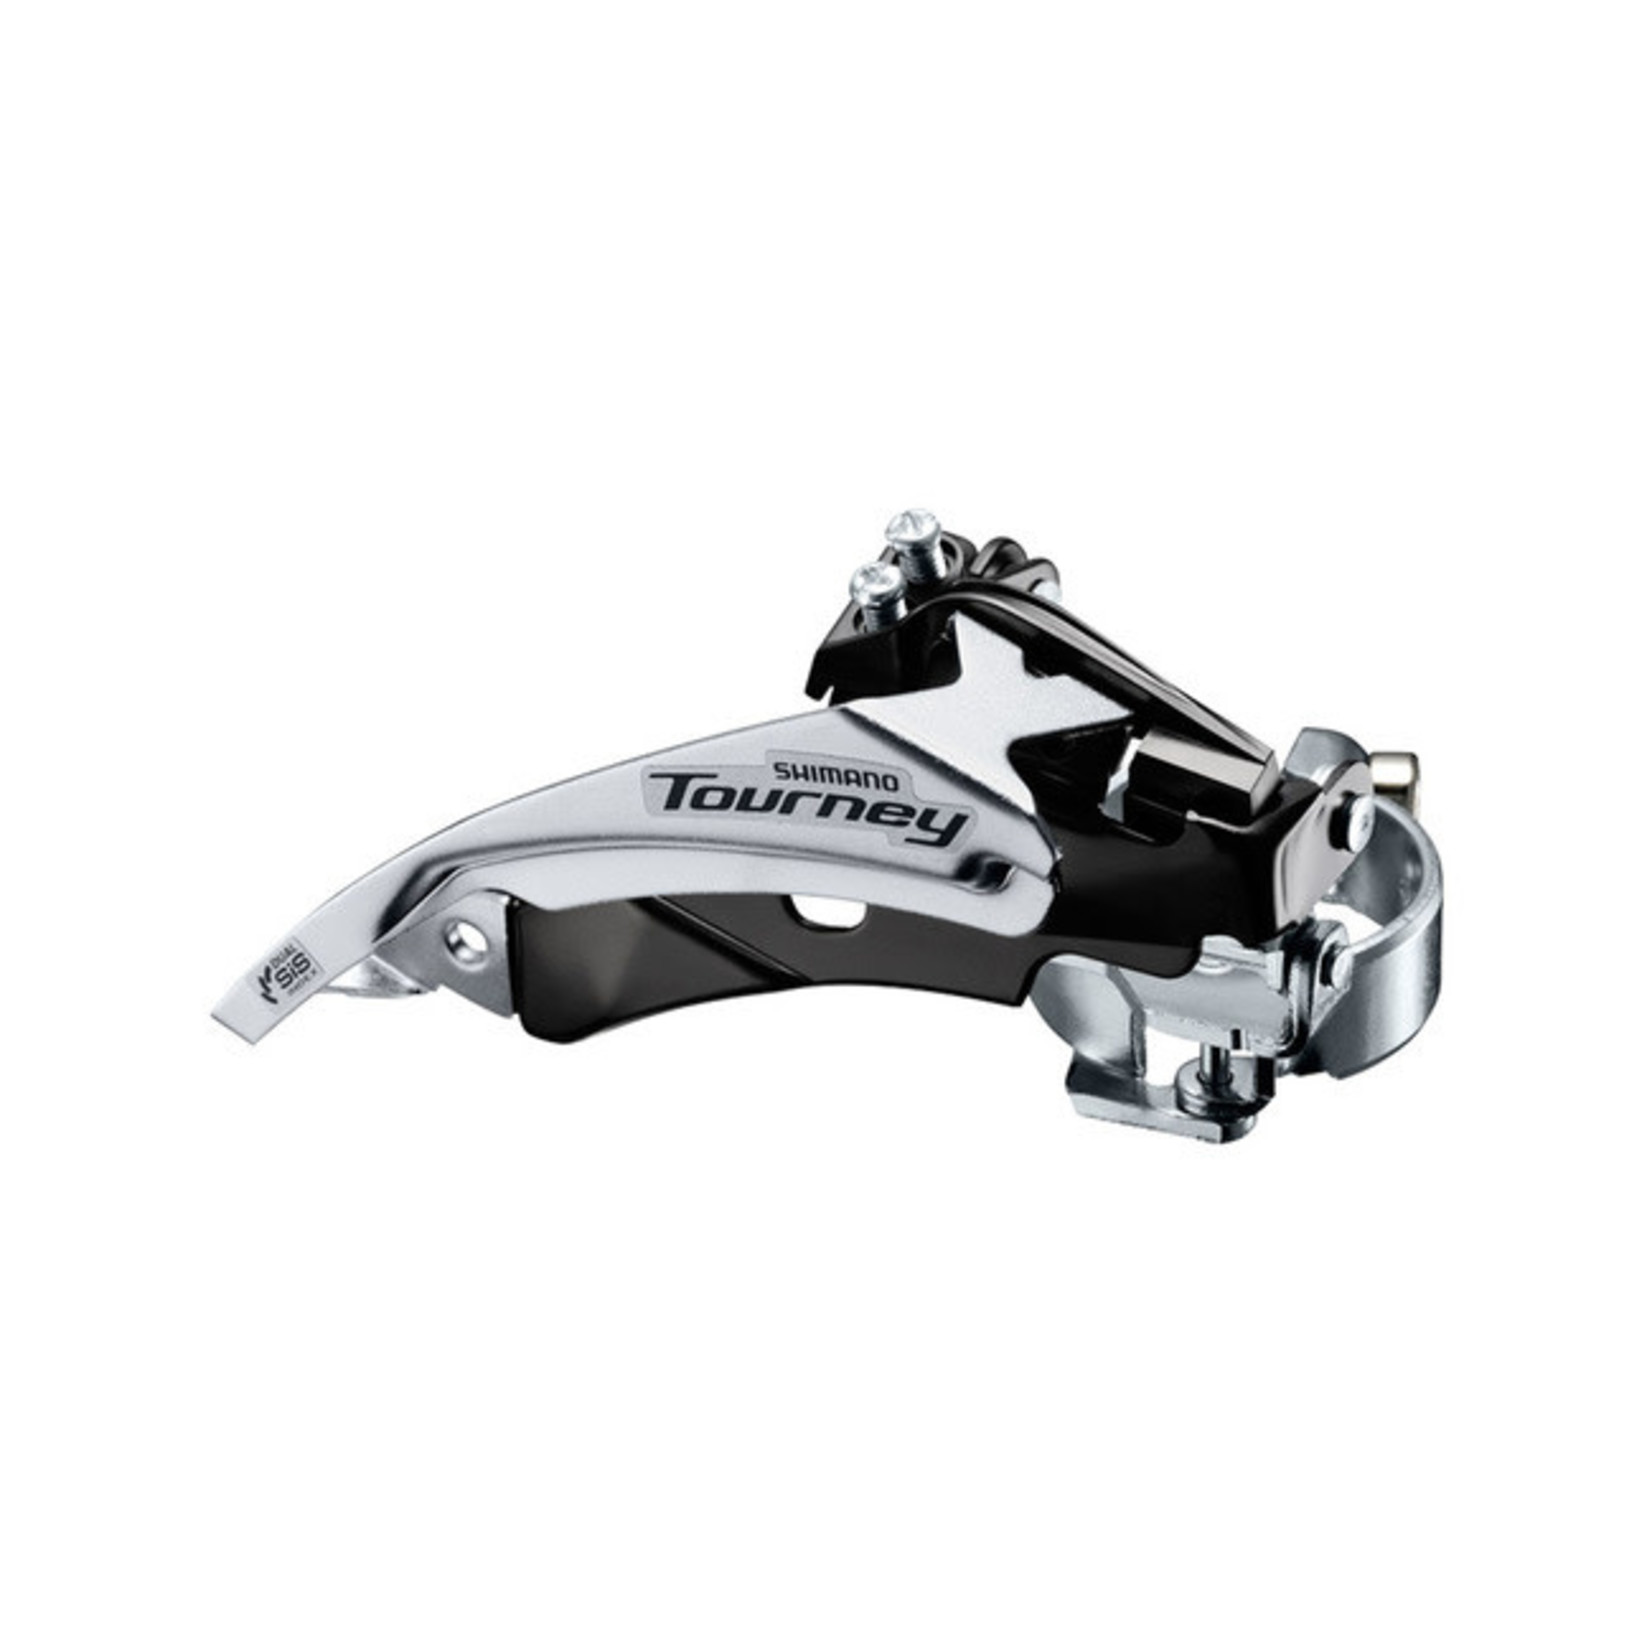 Shimano FD-TY510-TS3, TOURNEY, TOP-SWING, DUAL-PULL, FOR REAR 6/7-SPEED,BAND TYPE 34.9MM(W/S & M ADAPTER),CS ANGLE:63-66, FOR 48T,CL:47.5/50MM